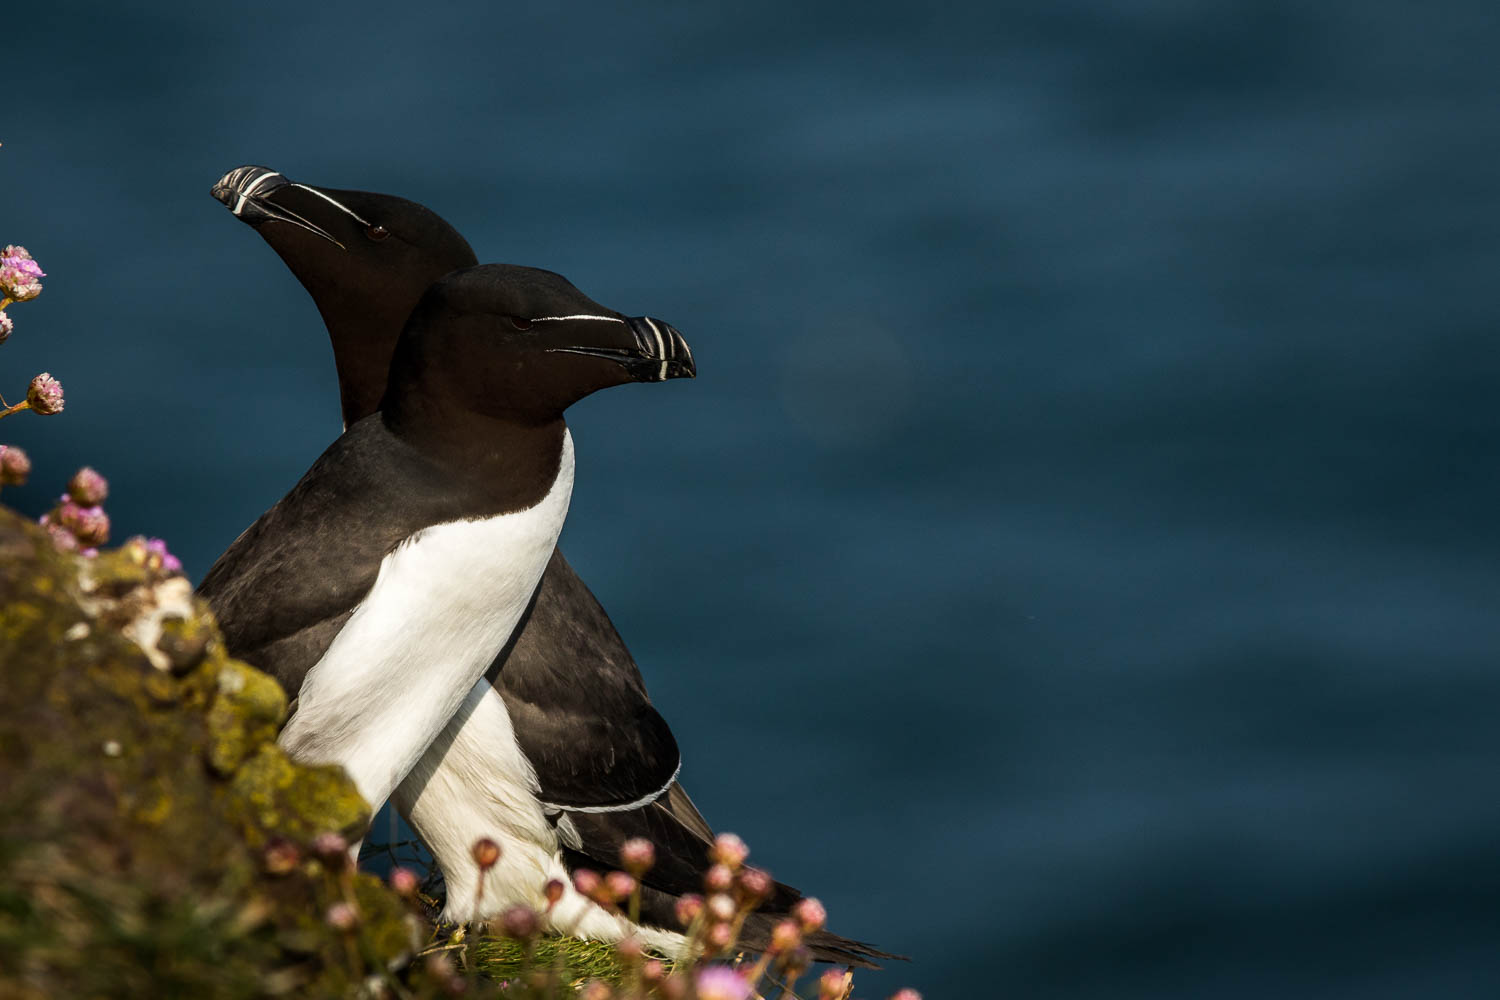 A Razorbill mating pair.